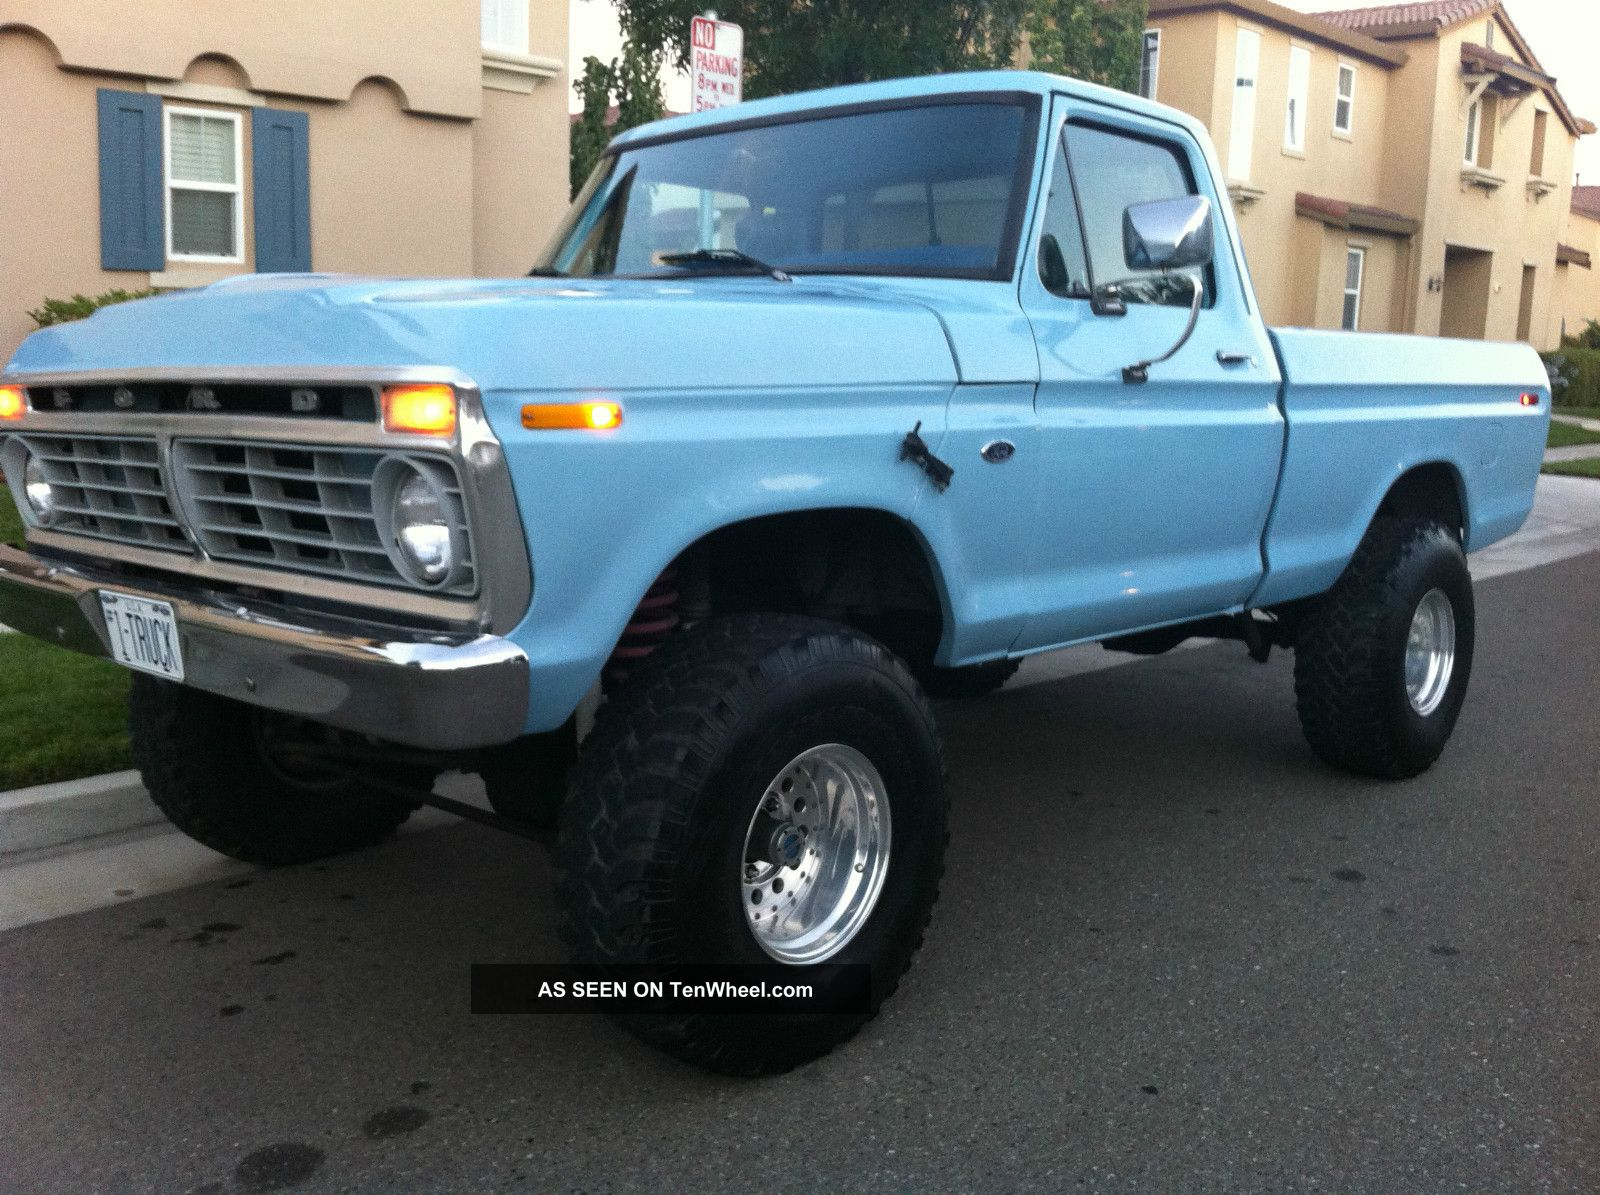 1977 Ford F150 Short Bed 4x4 Pickup V8 F-150 photo